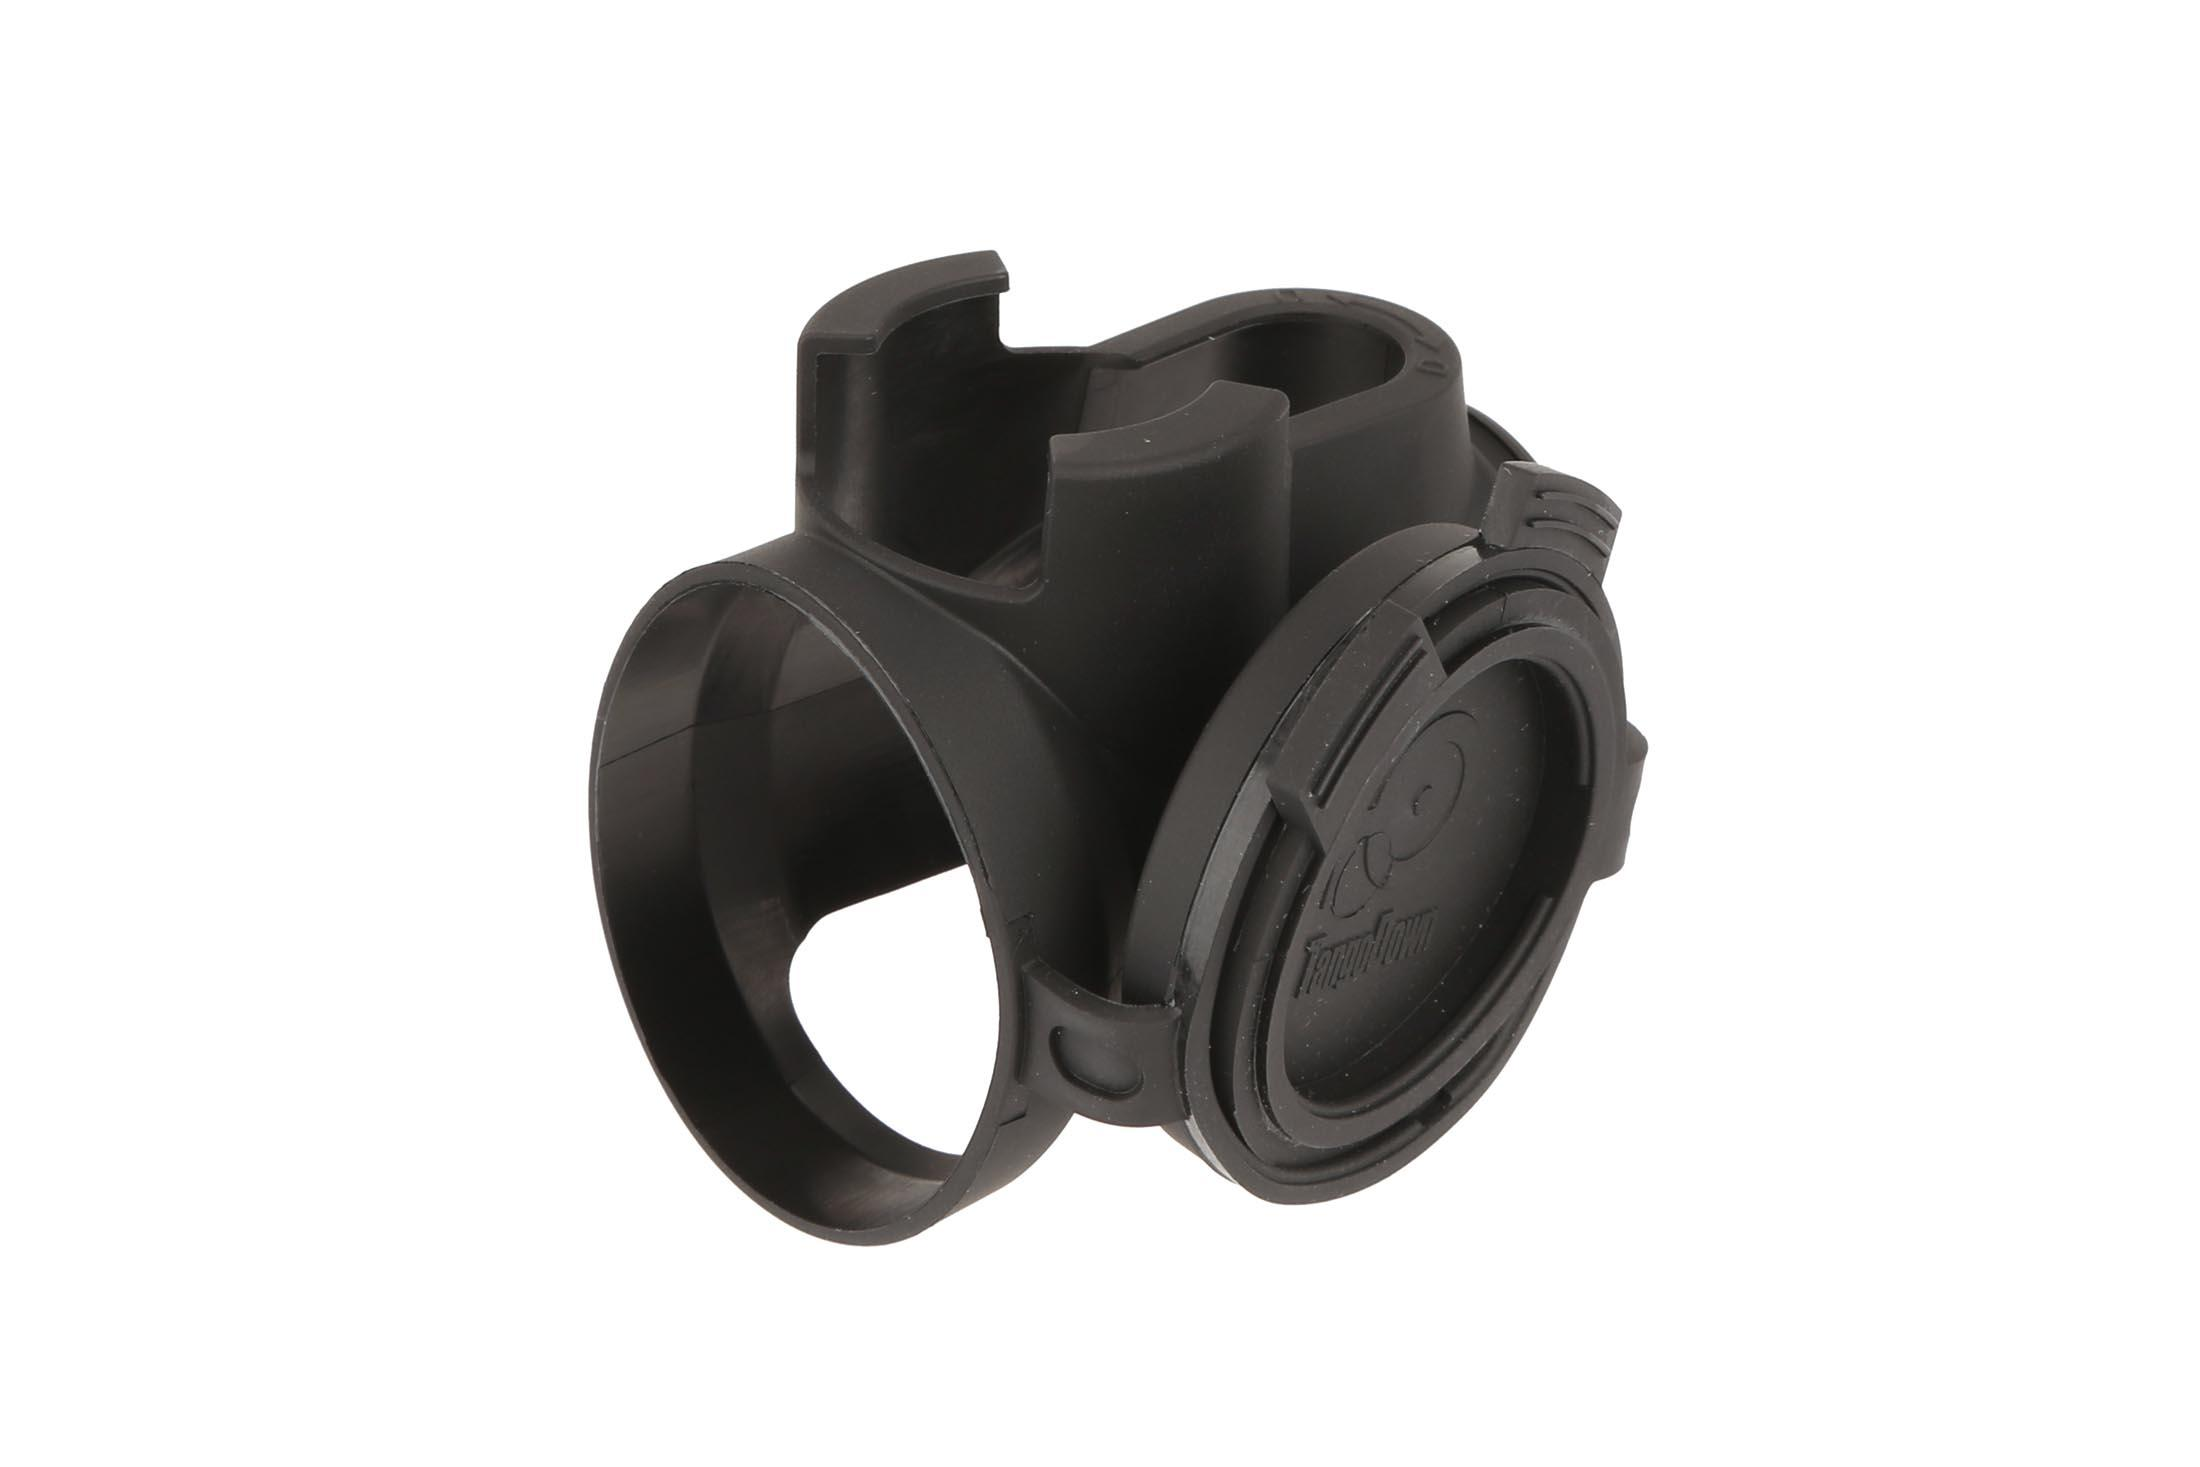 The Tango Down iO Trijicon MRO lens cover snap together to stay out of the way while shooting